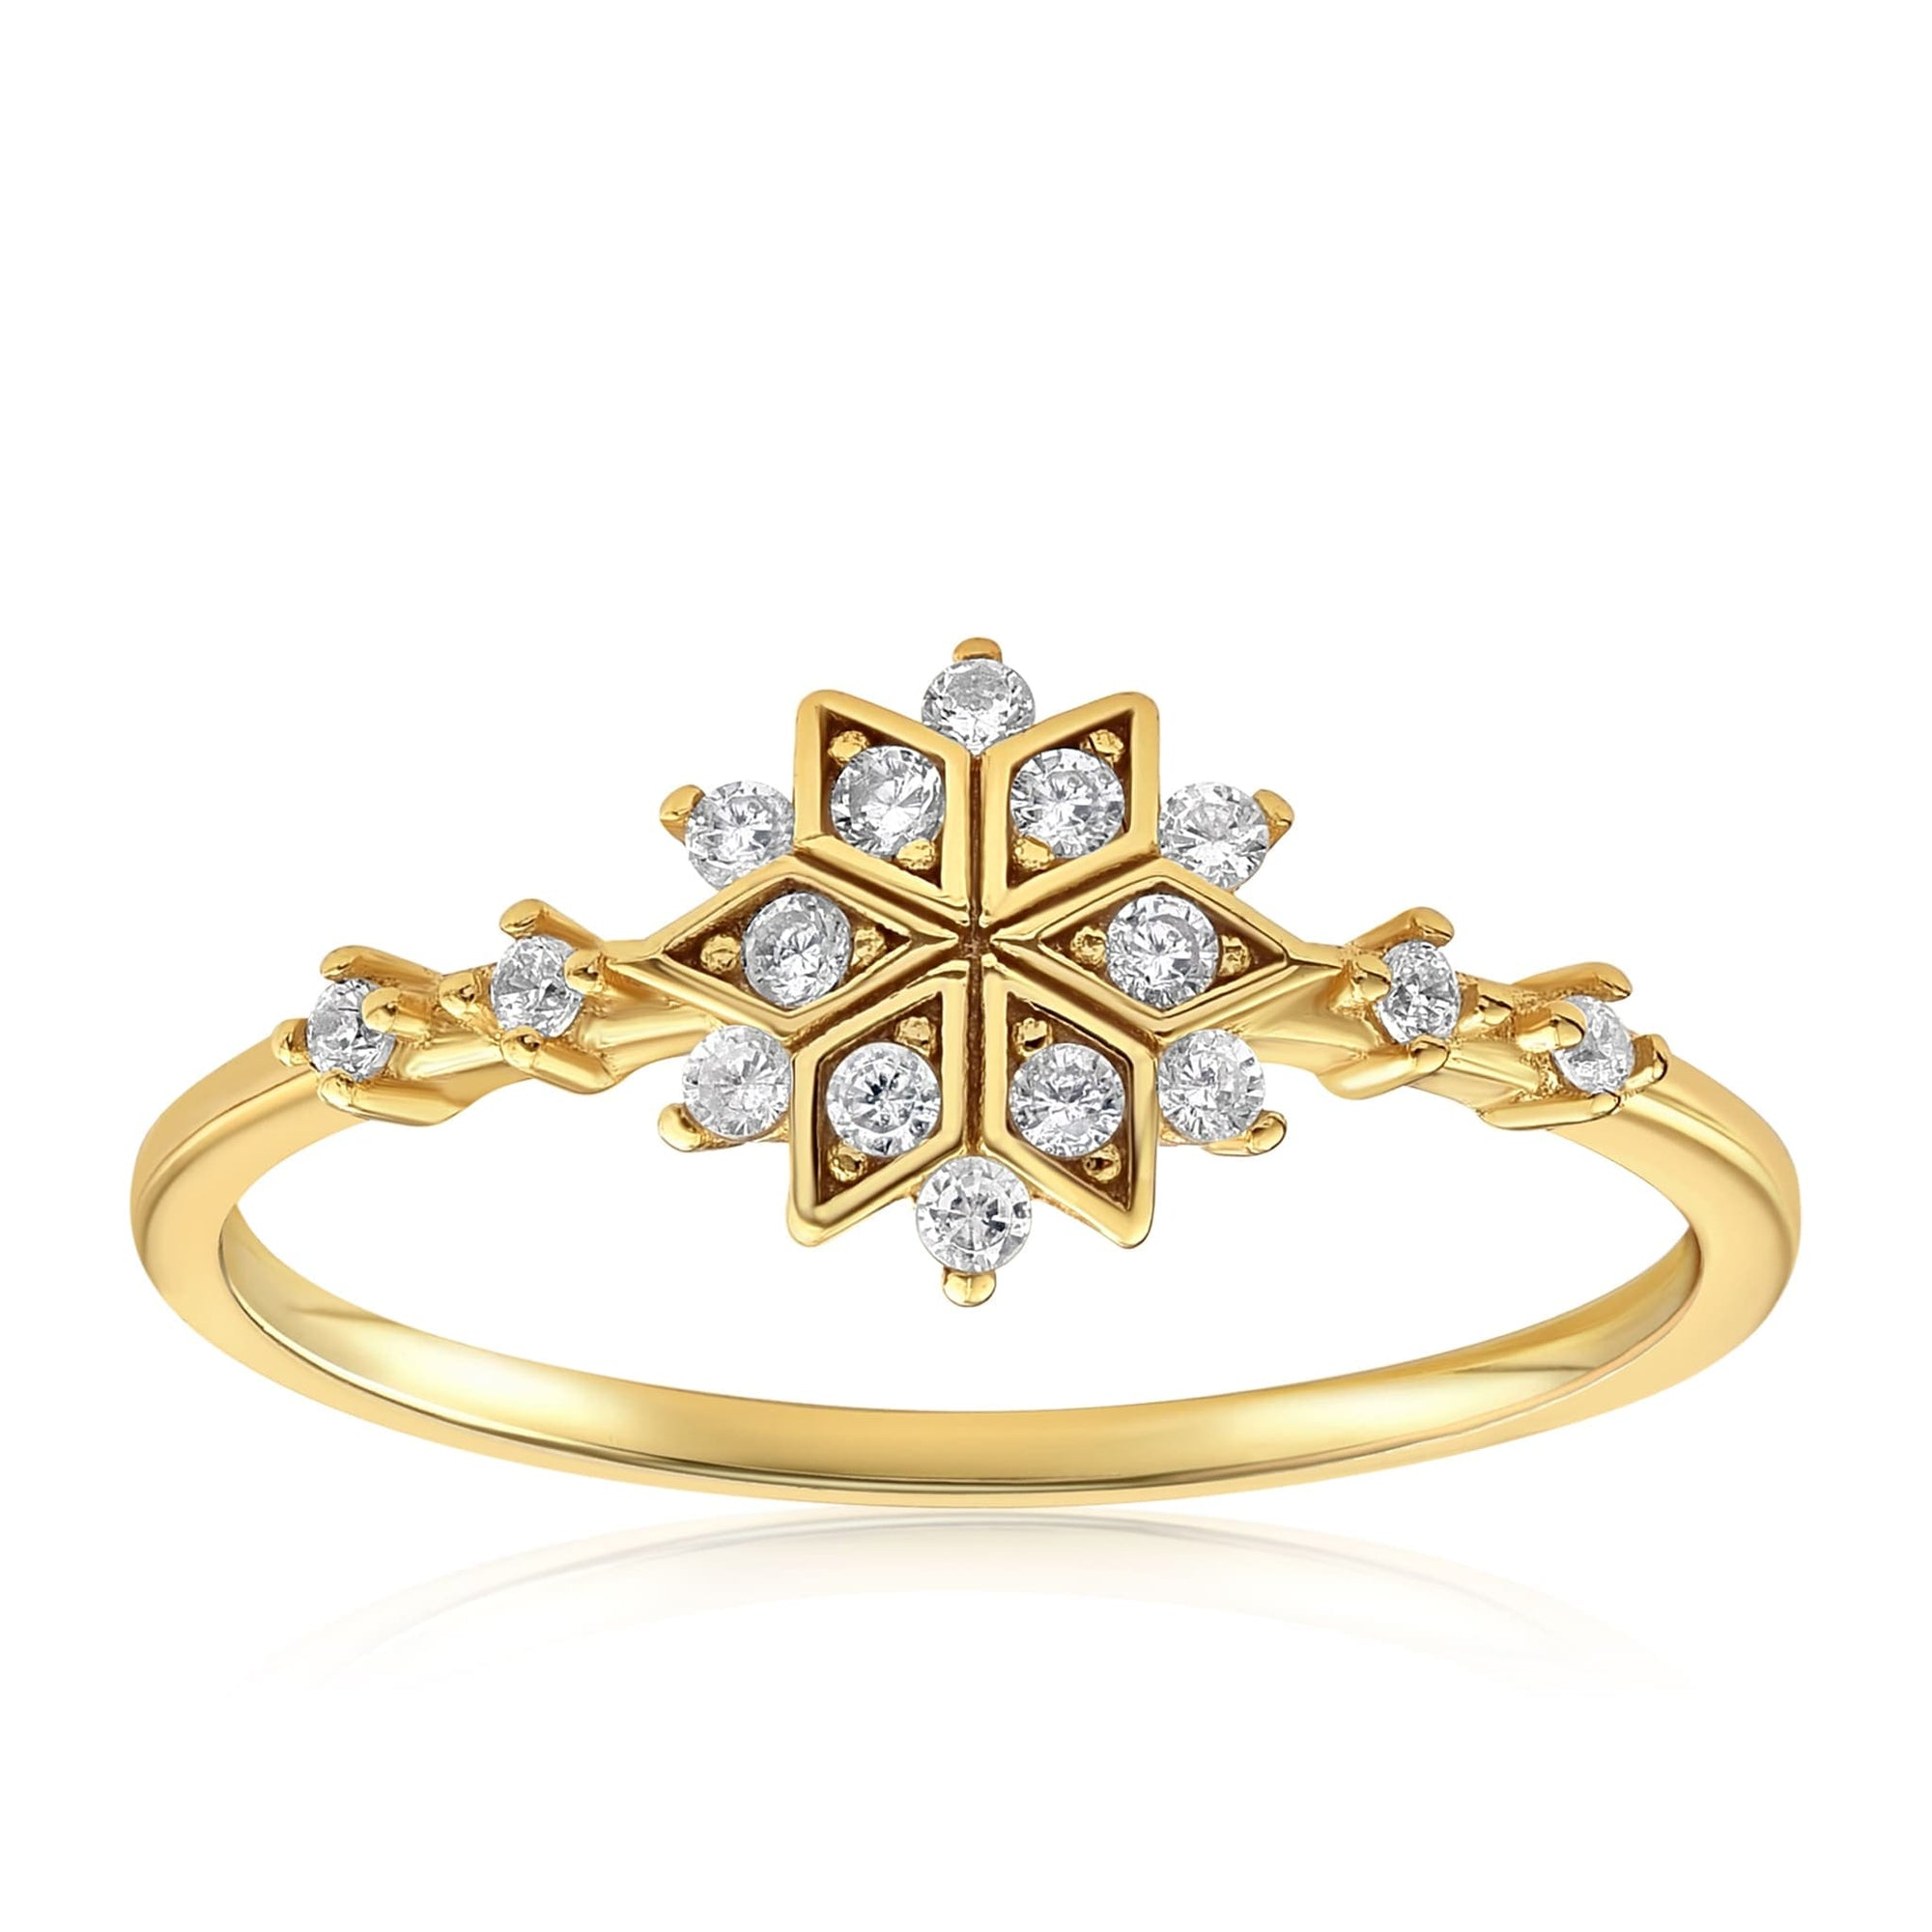 Sophia Snowflake Ring - Front View Facing Up - 18K Yellow Gold Vermeil